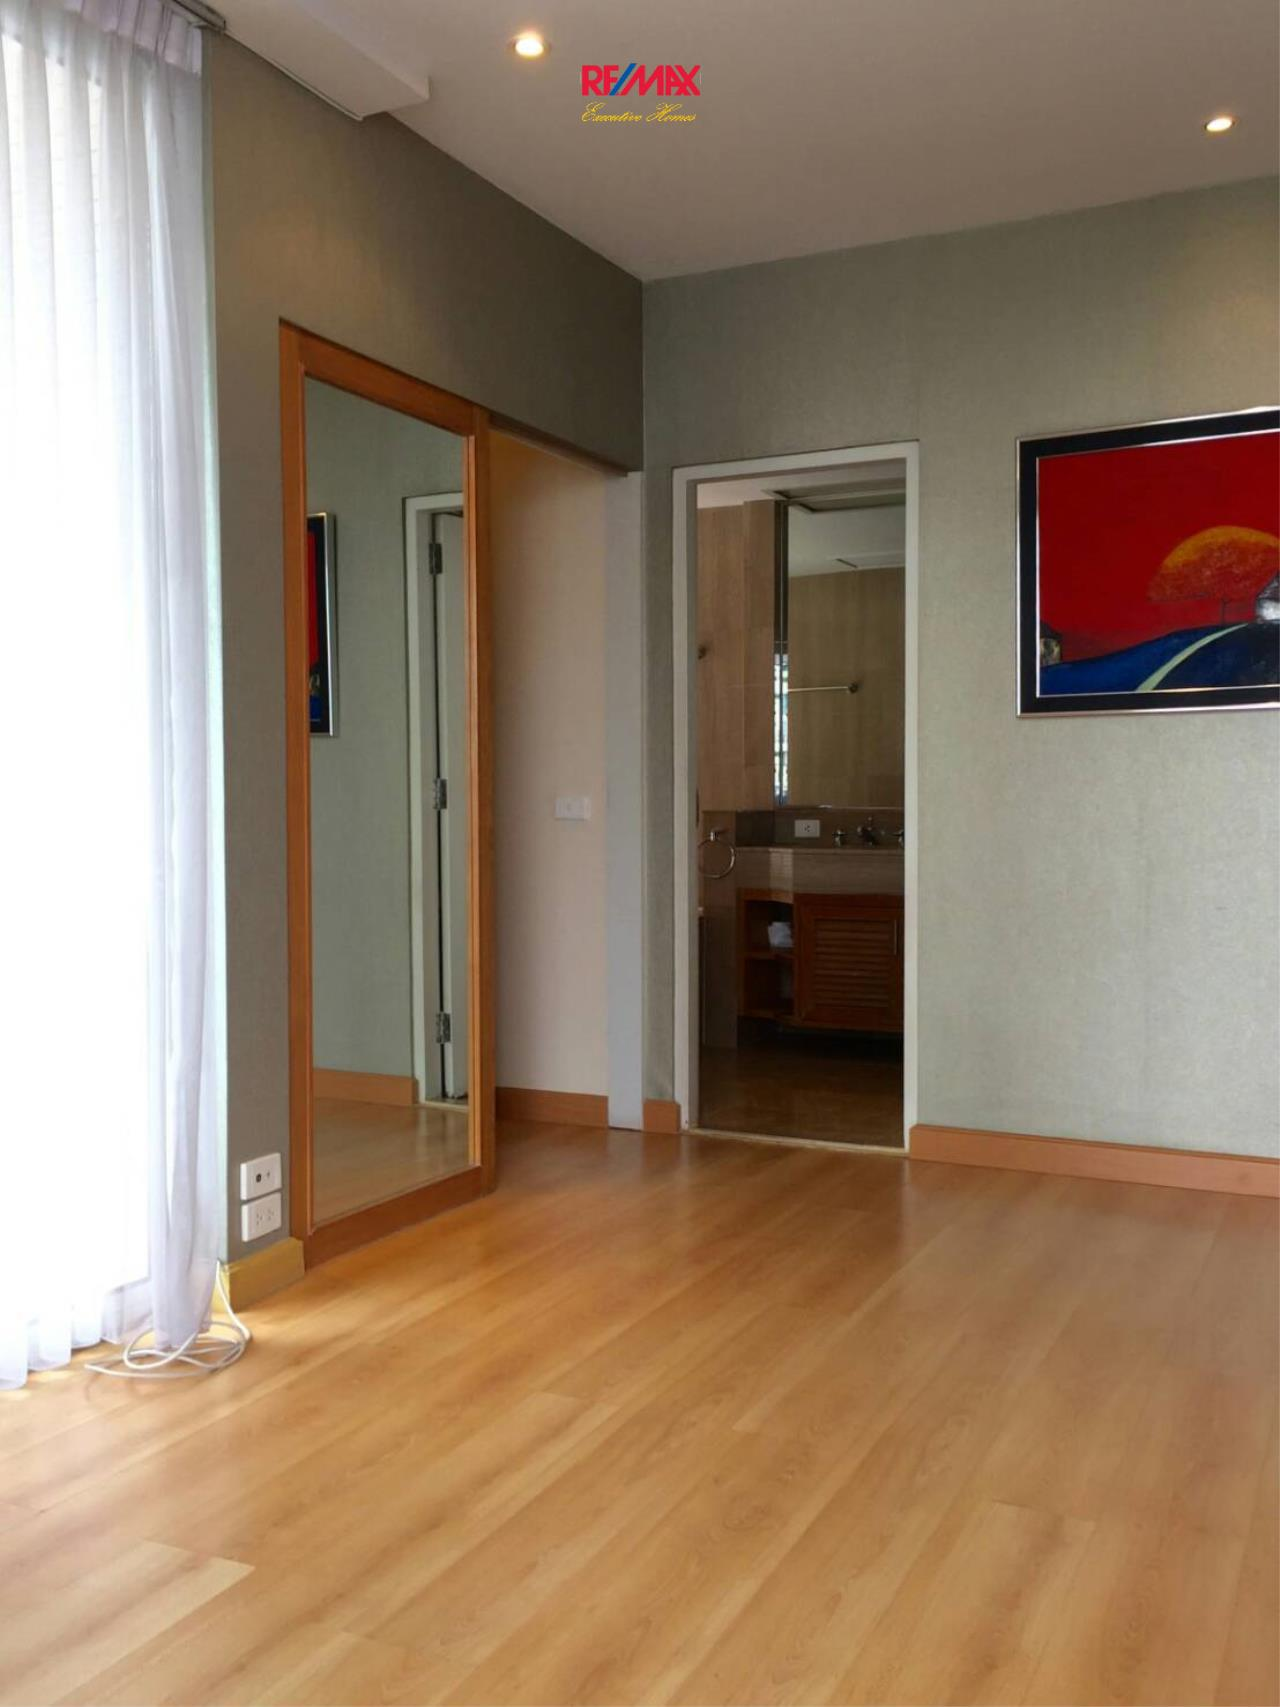 RE/MAX Executive Homes Agency's Spacious 2 Bedroom for Rent Langsuan Ville 7